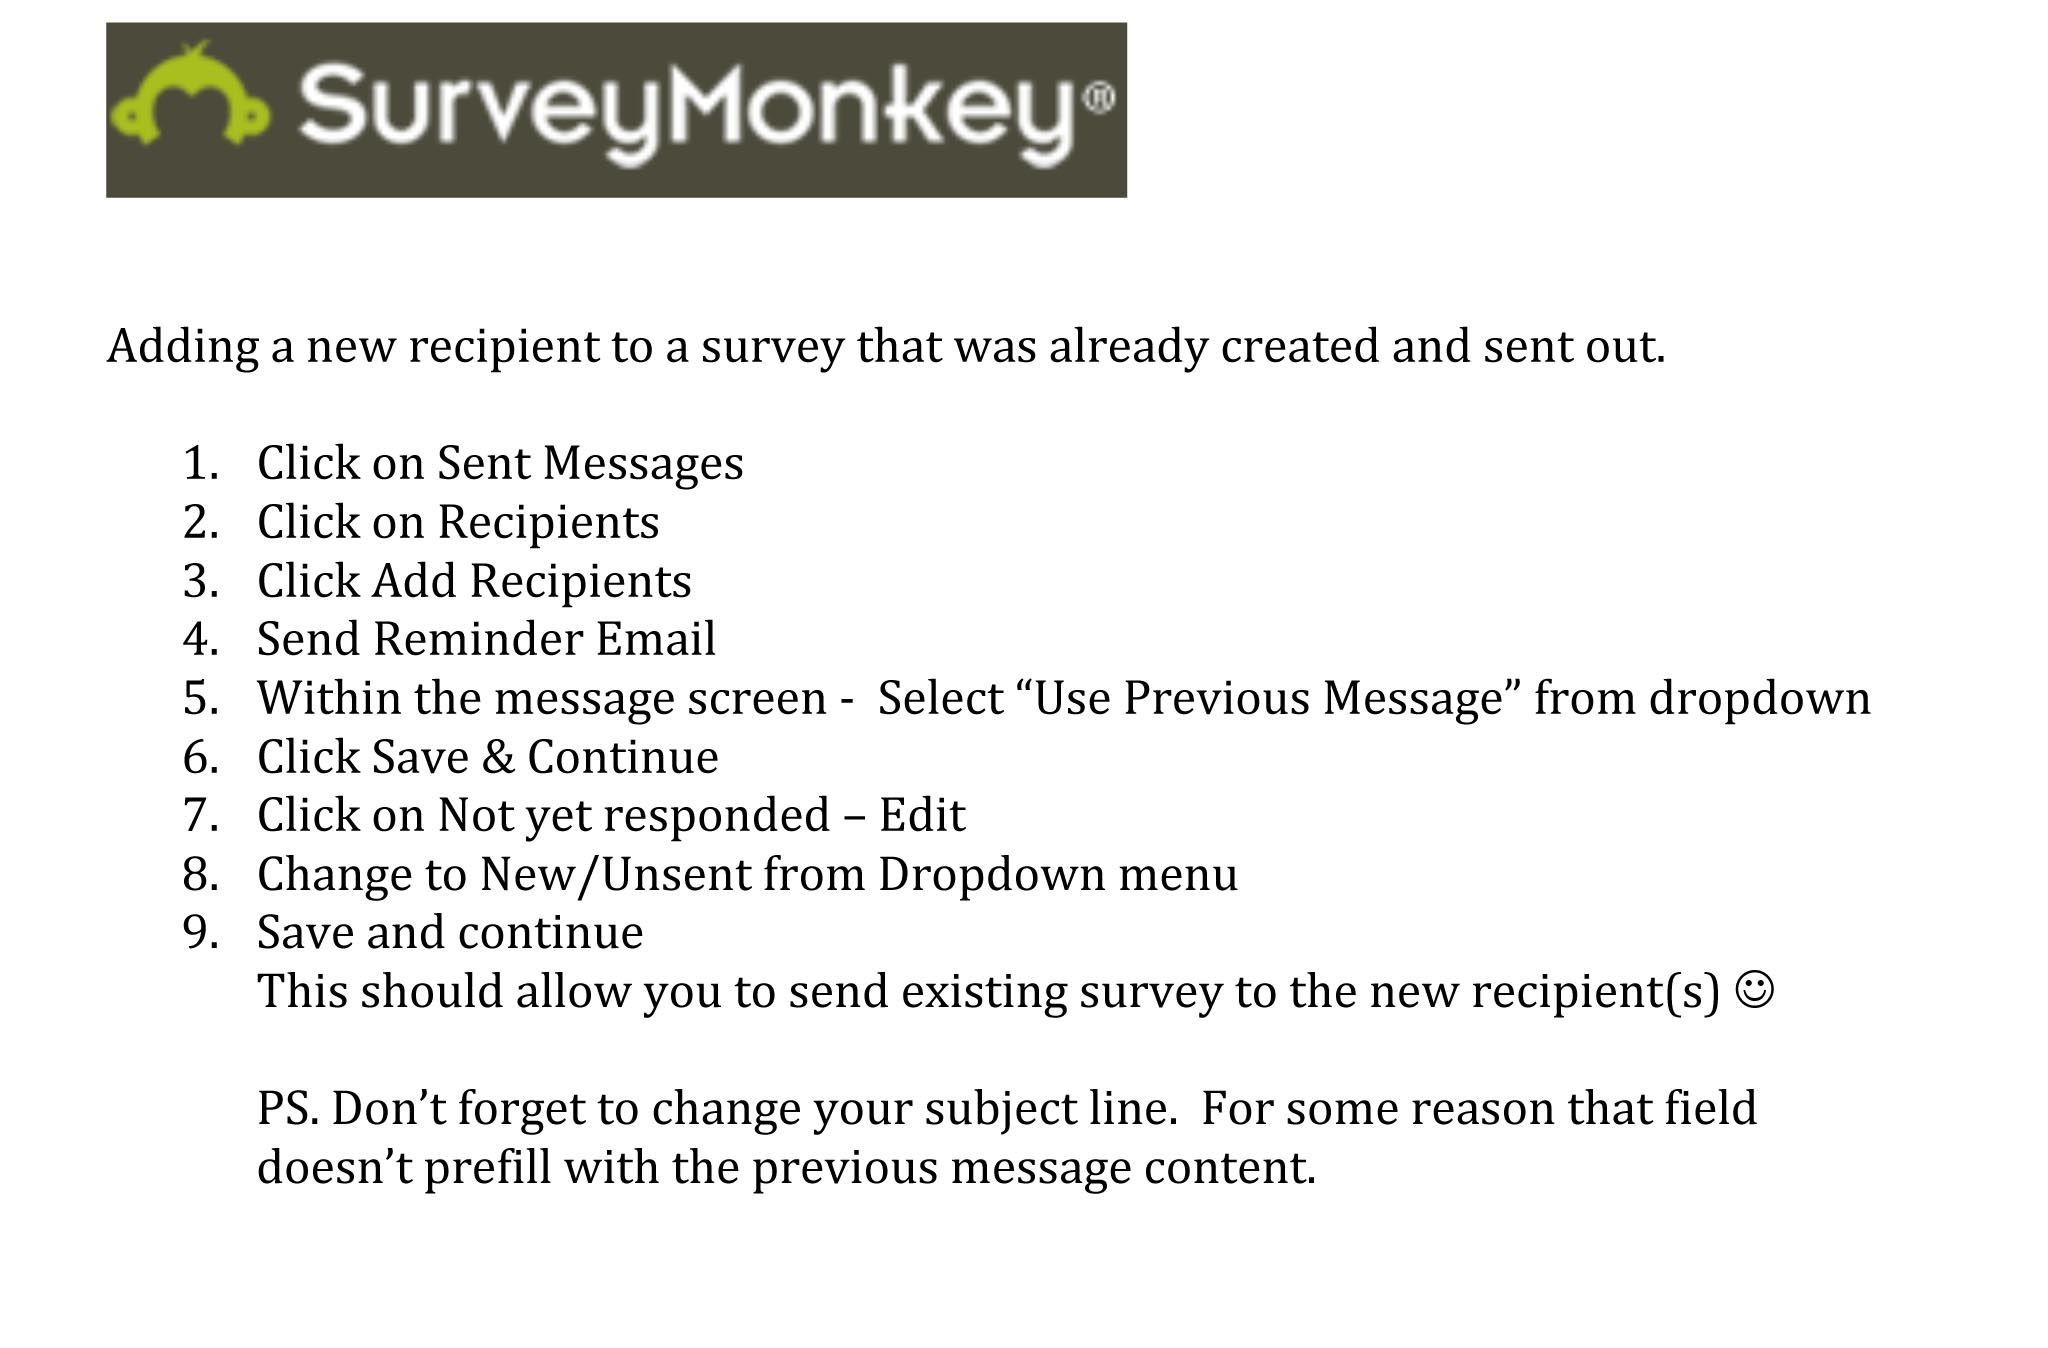 Survey Monkey How To Add A New Recipient To A Survey That Was